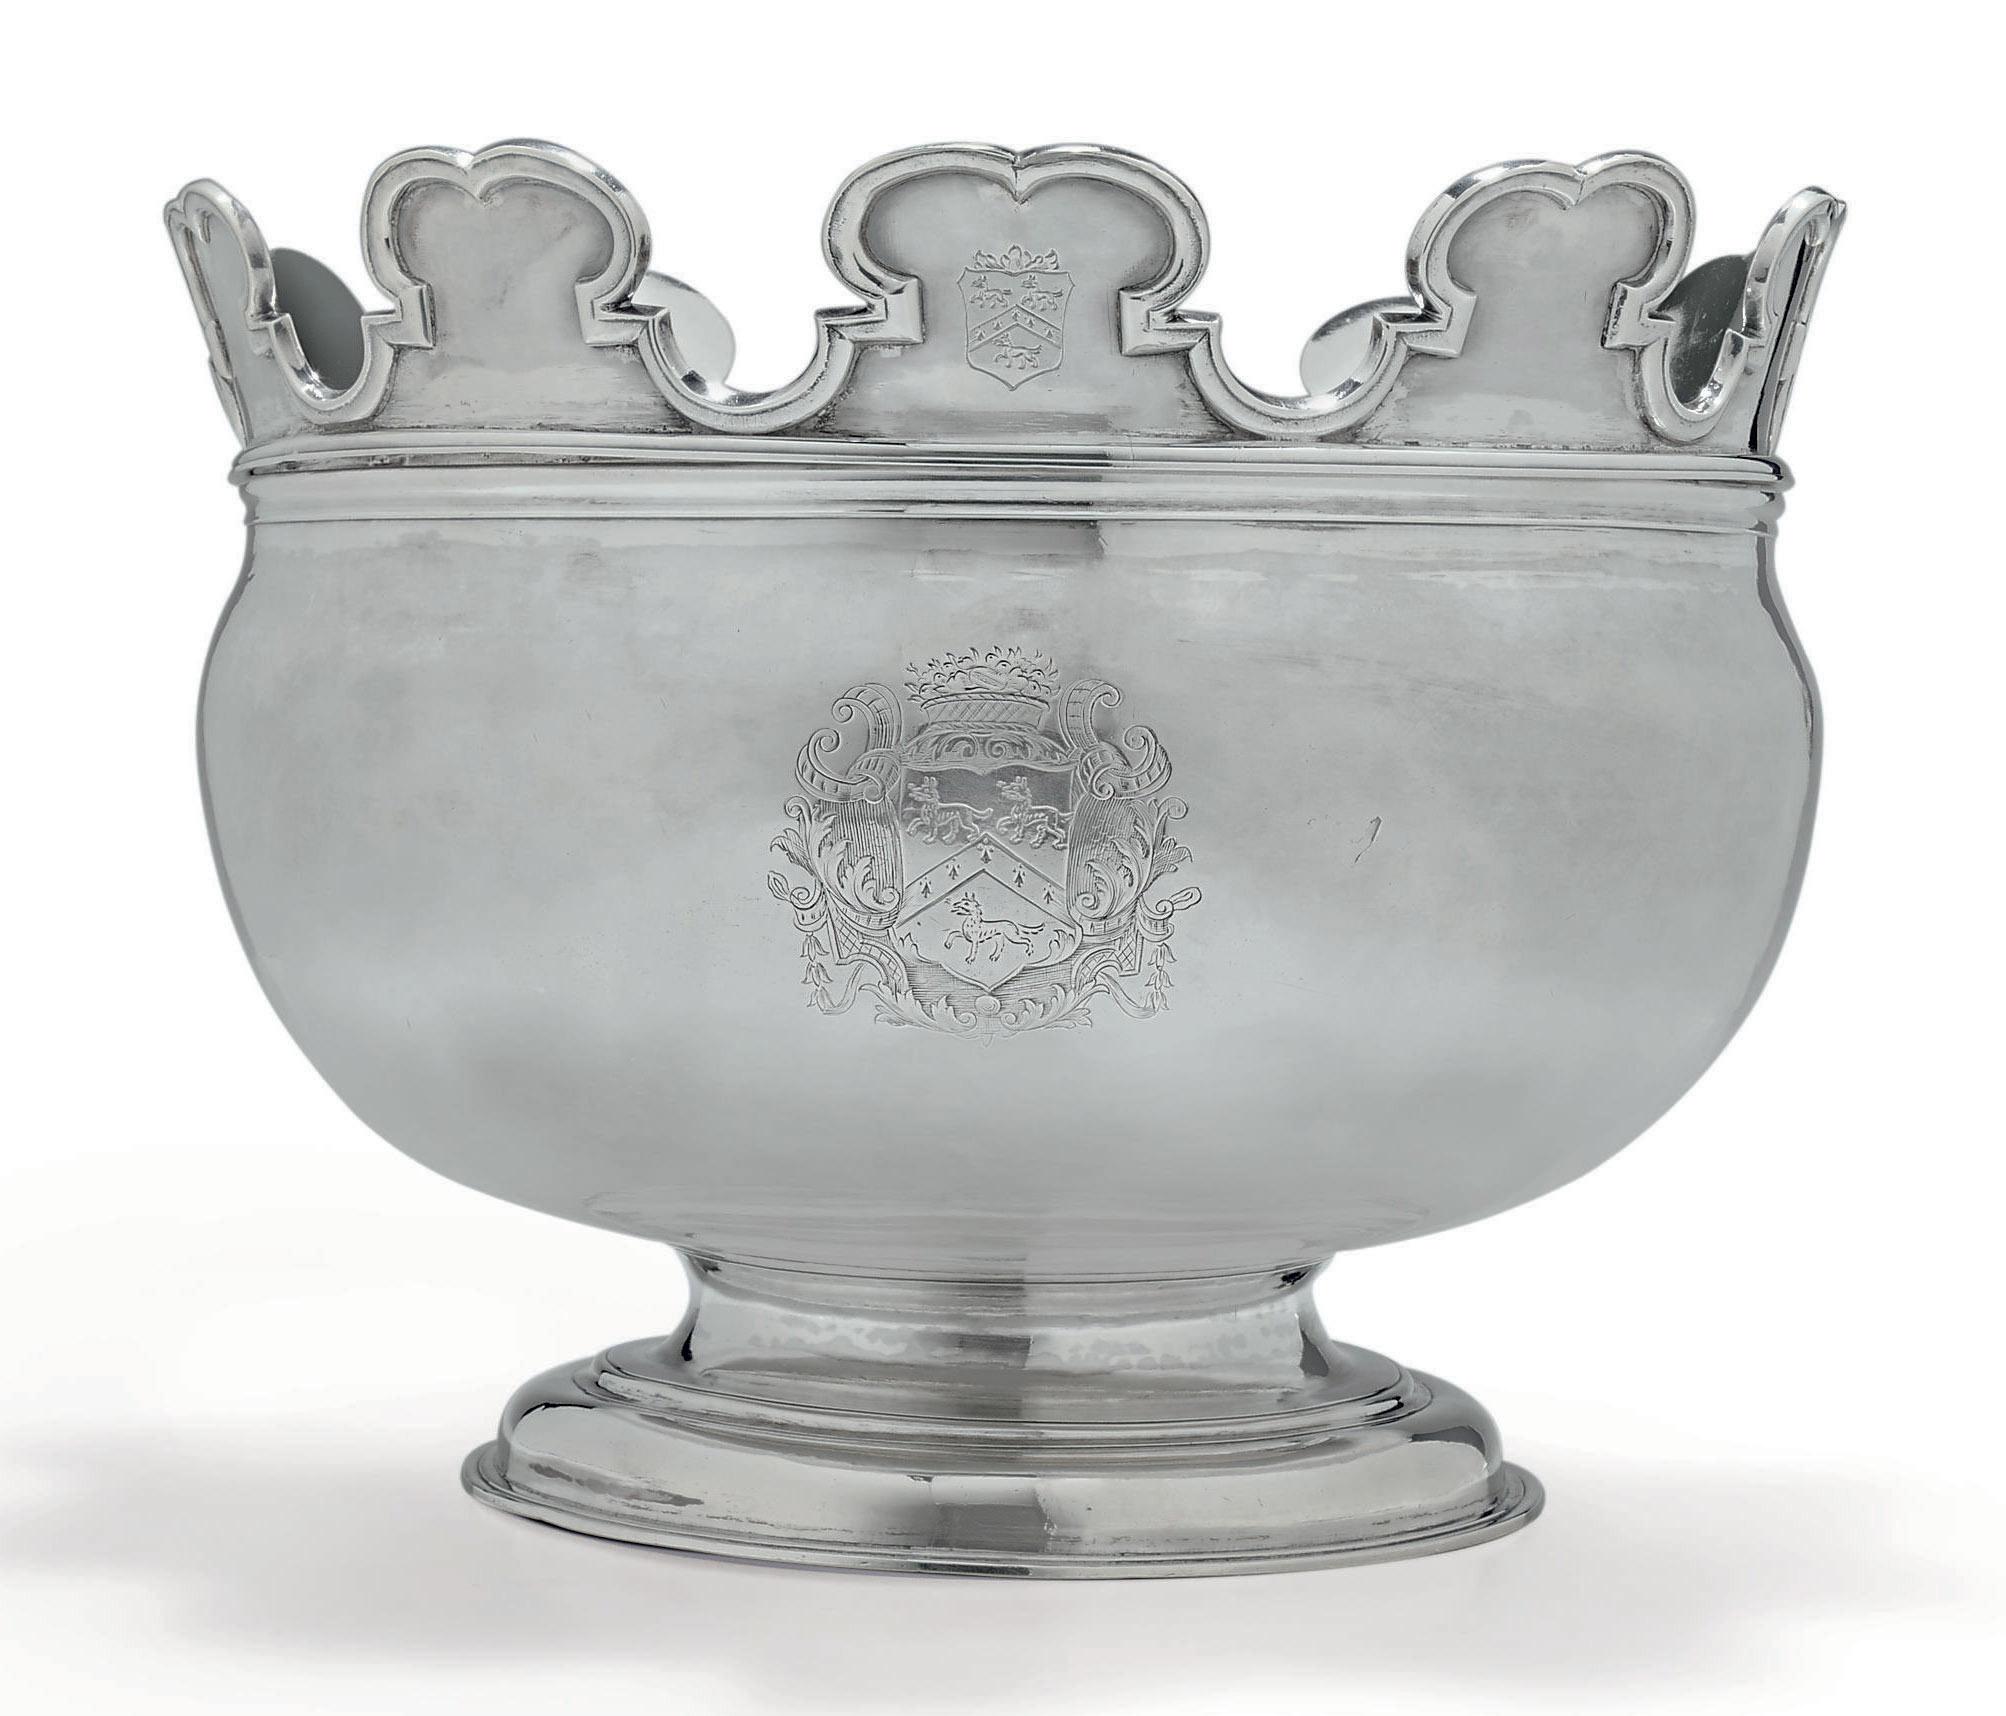 A FINE GEORGE II SILVER MONTEITH BOWL OF AMERICAN INTEREST